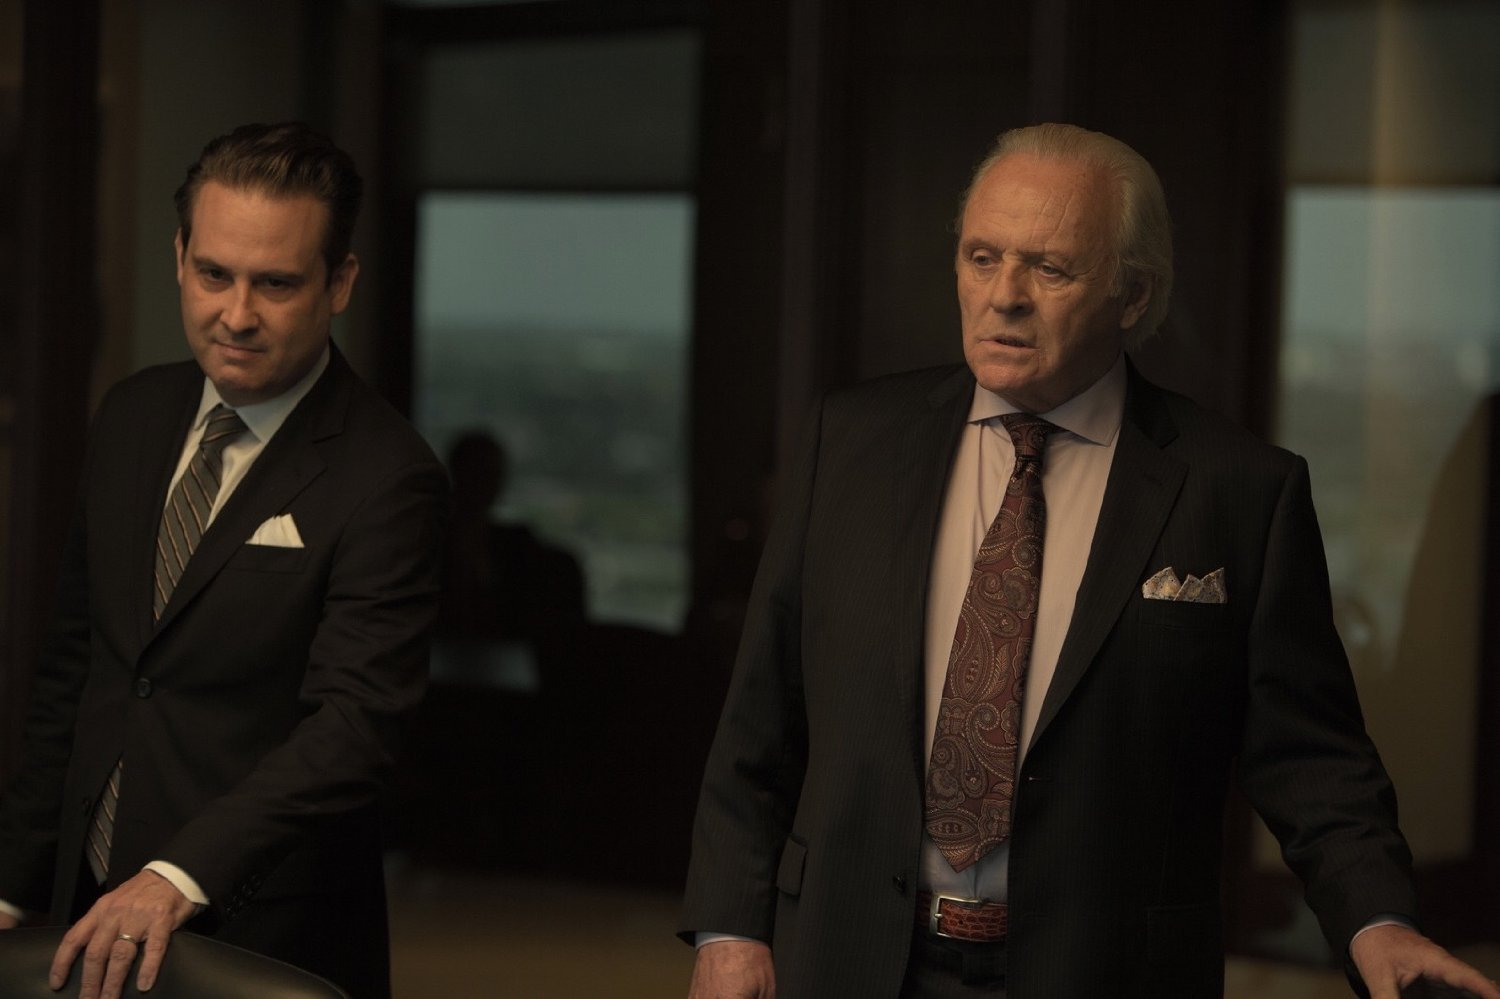 Al Pacino and Anthony Hopkins' new movie Misconduct made just £97 in UK cinemas